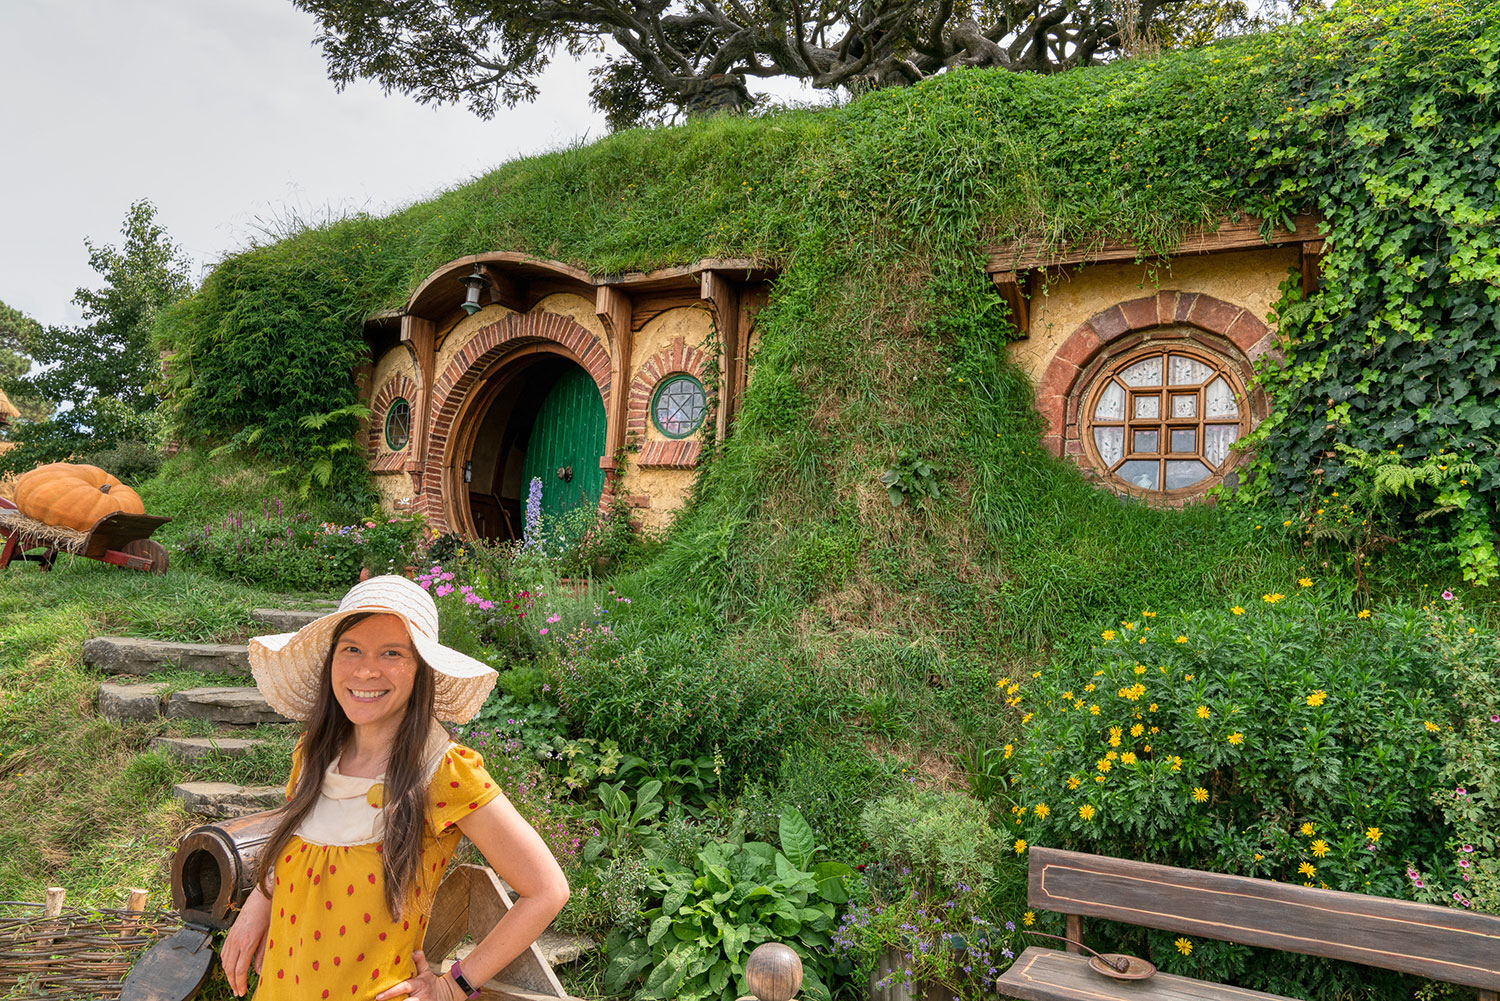 Thaneeya McArdle in front of a Hobbit house in Hobbiton